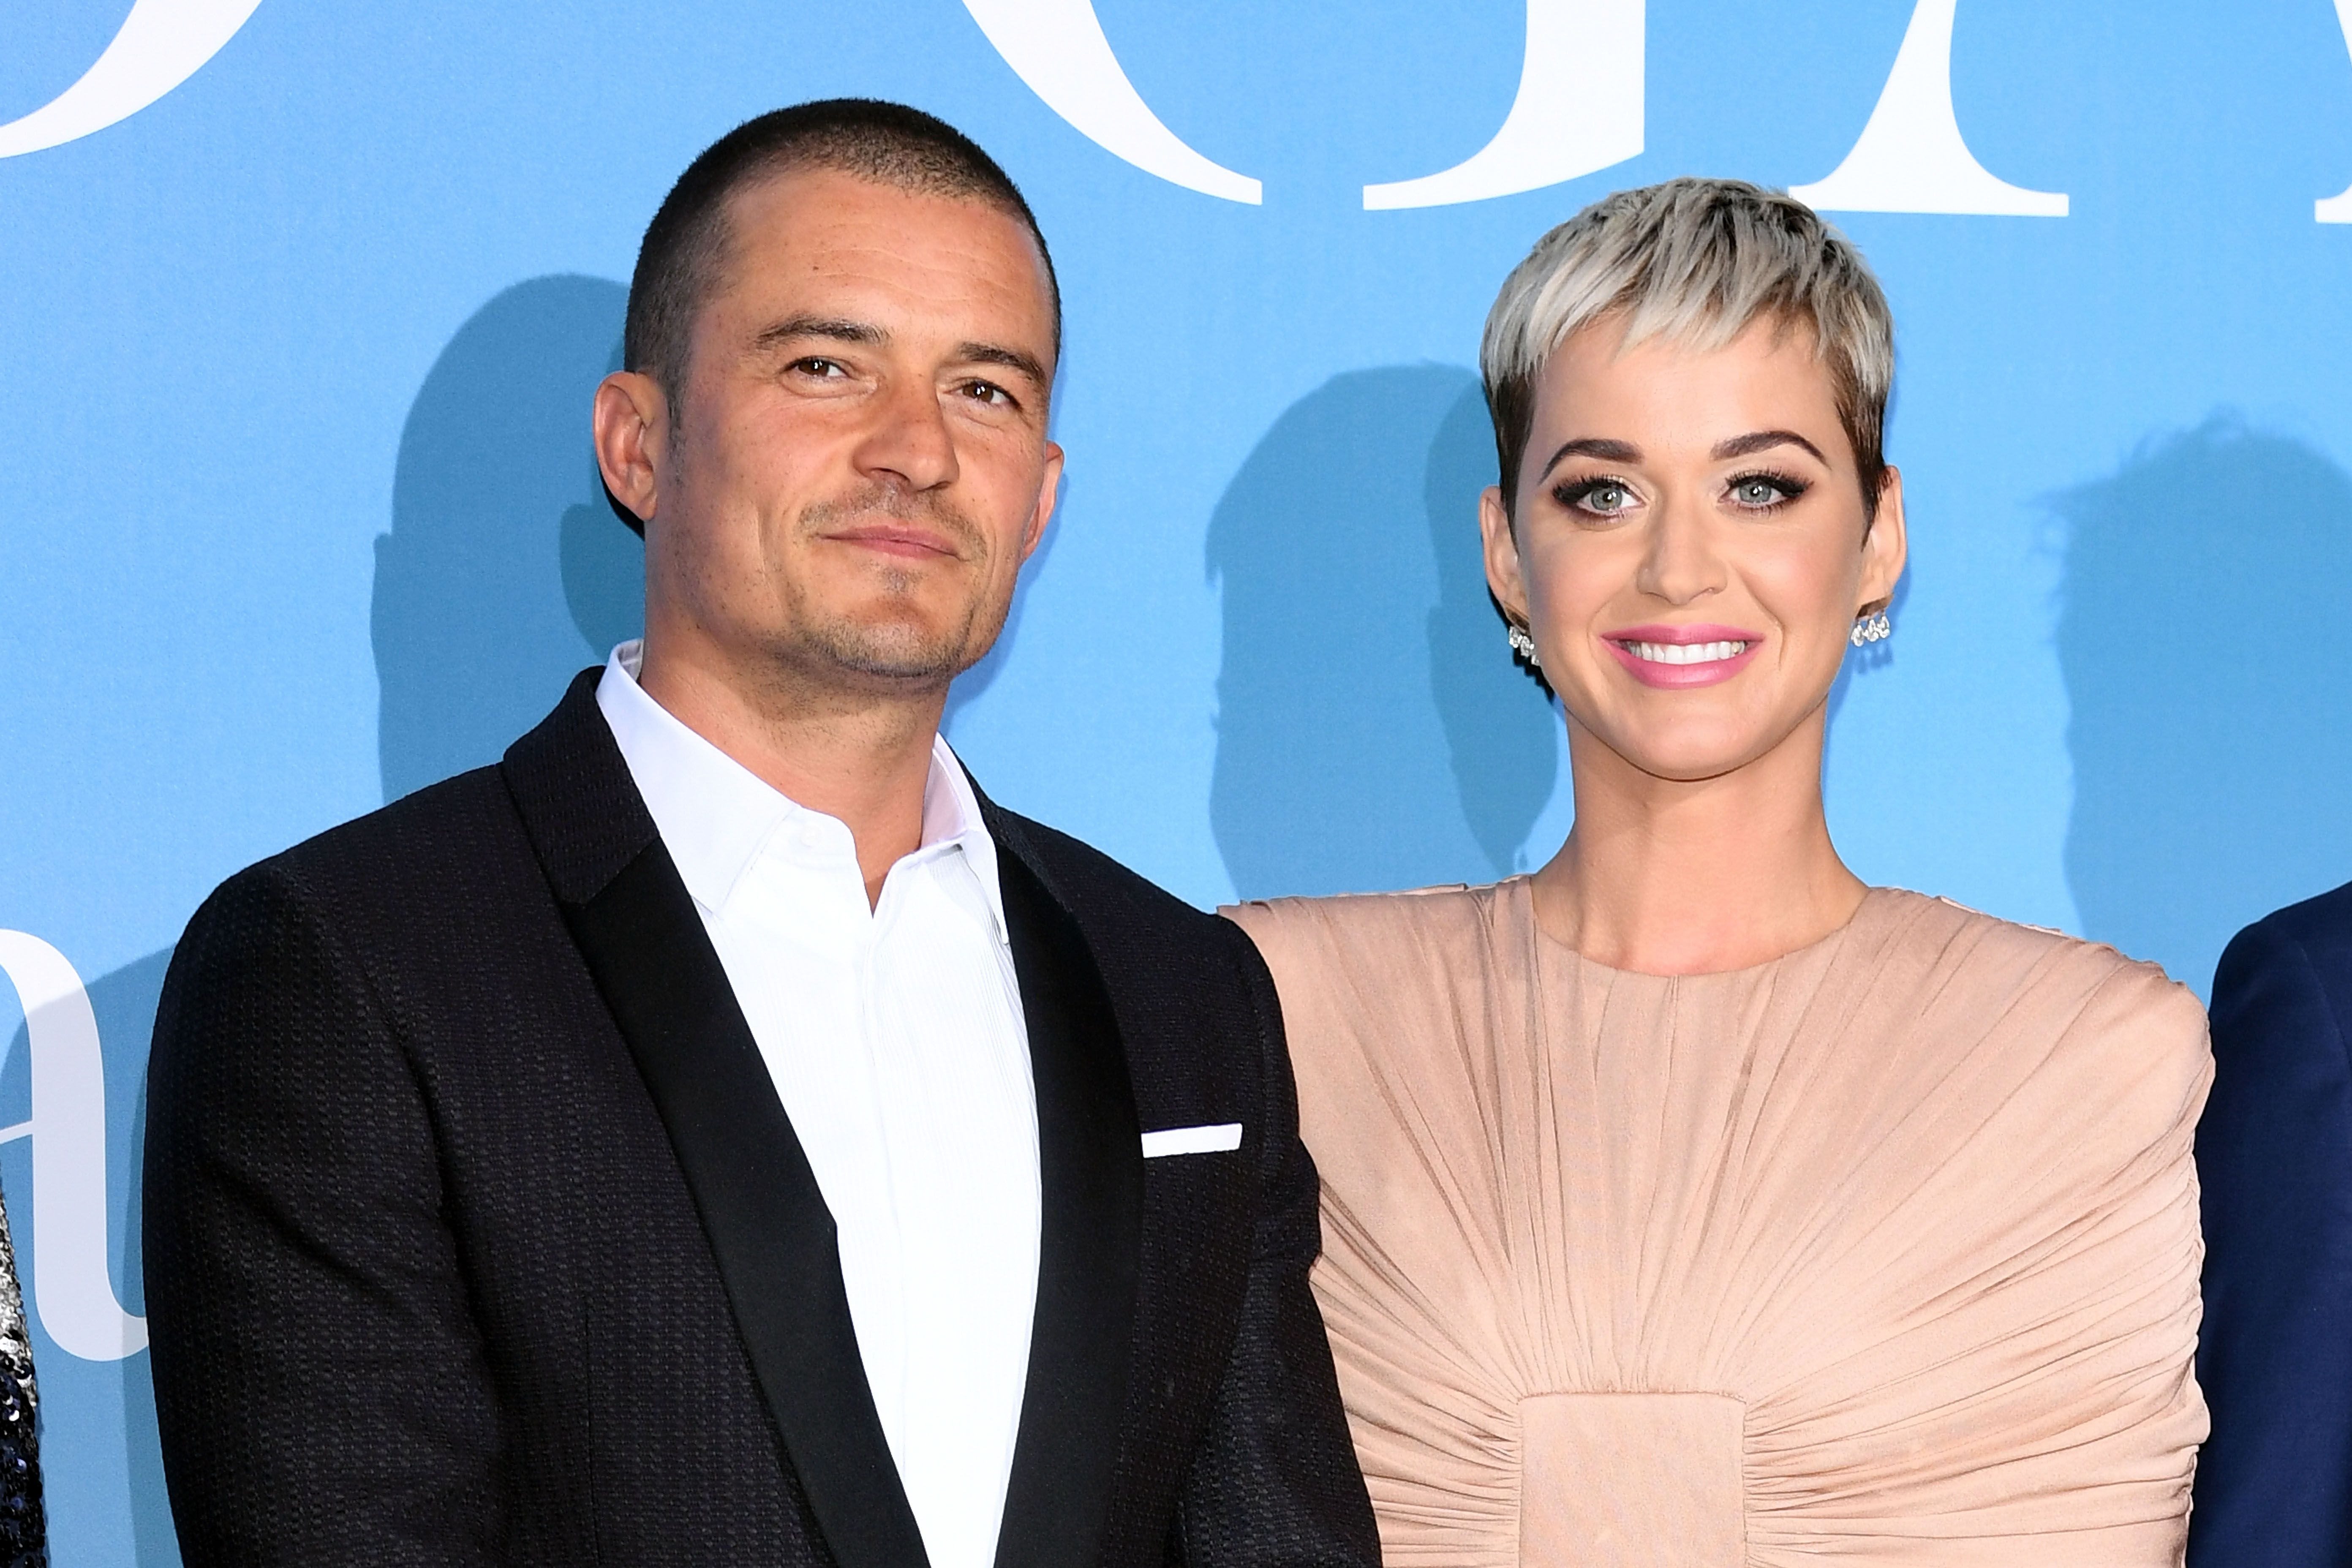 Katy perry who is she dating 2019